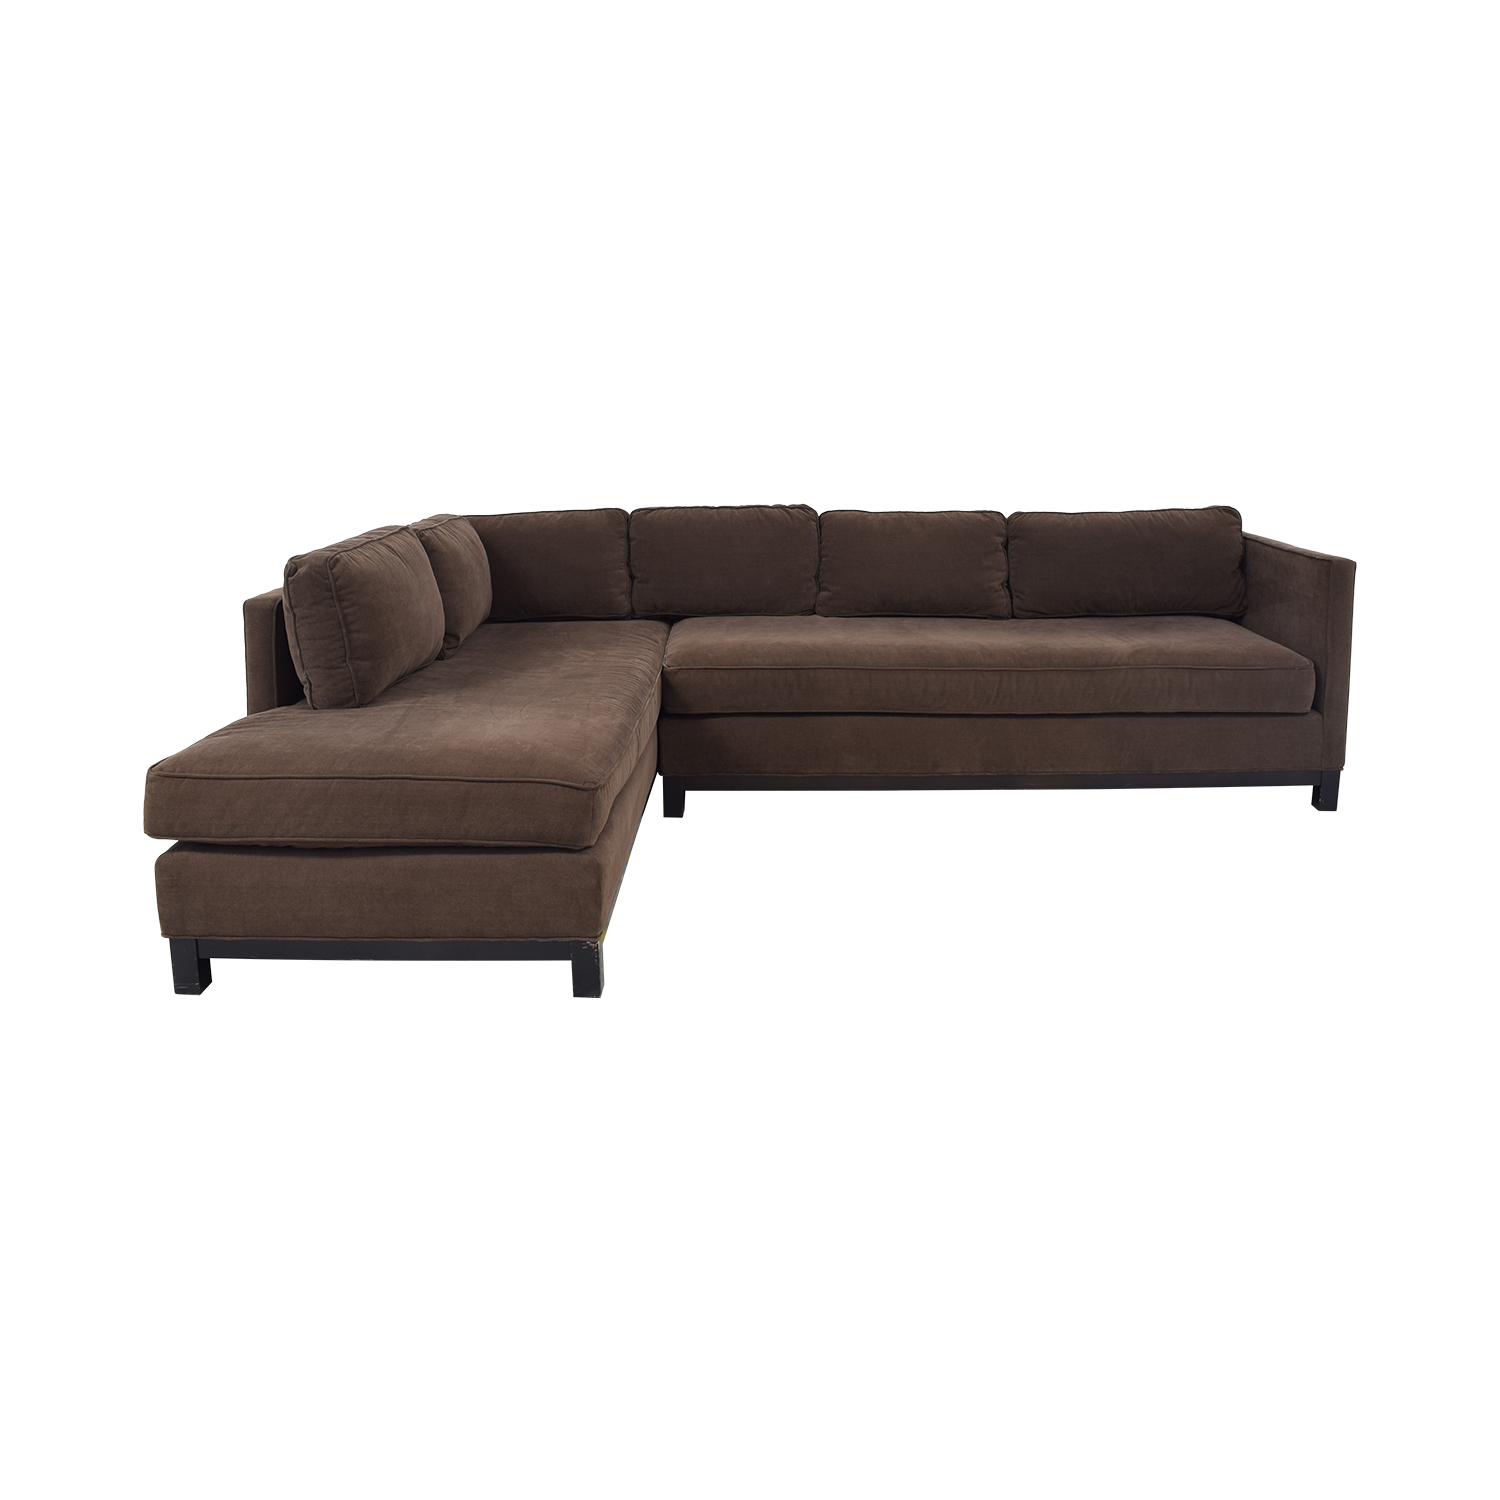 Mitchell Gold + Bob Williams Chocolate Microsuede Chaise Sectional Mitchell Gold + Bob Williams